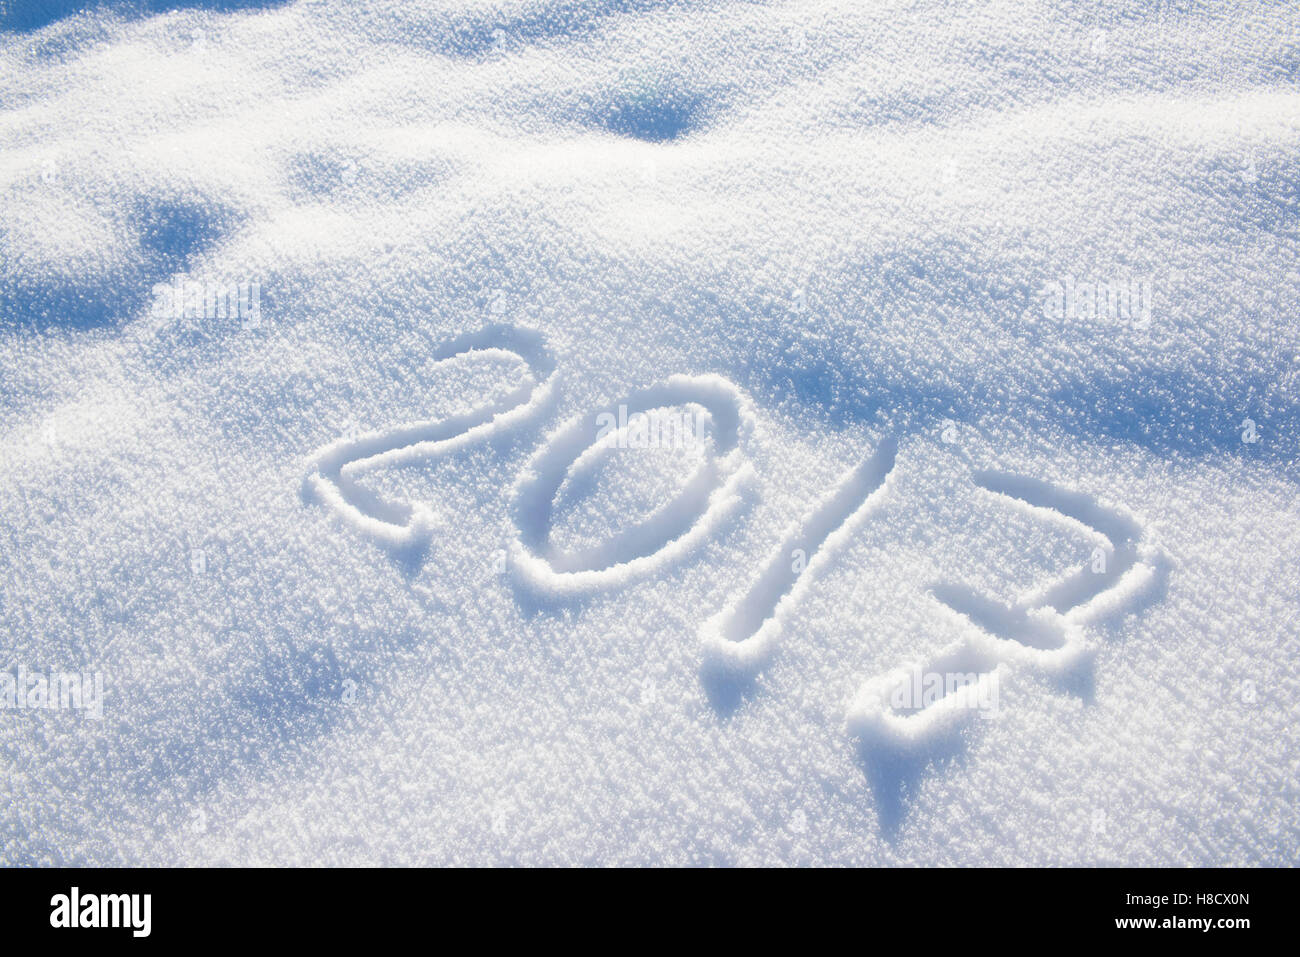 new years date 2017 written in snow Stock Photo